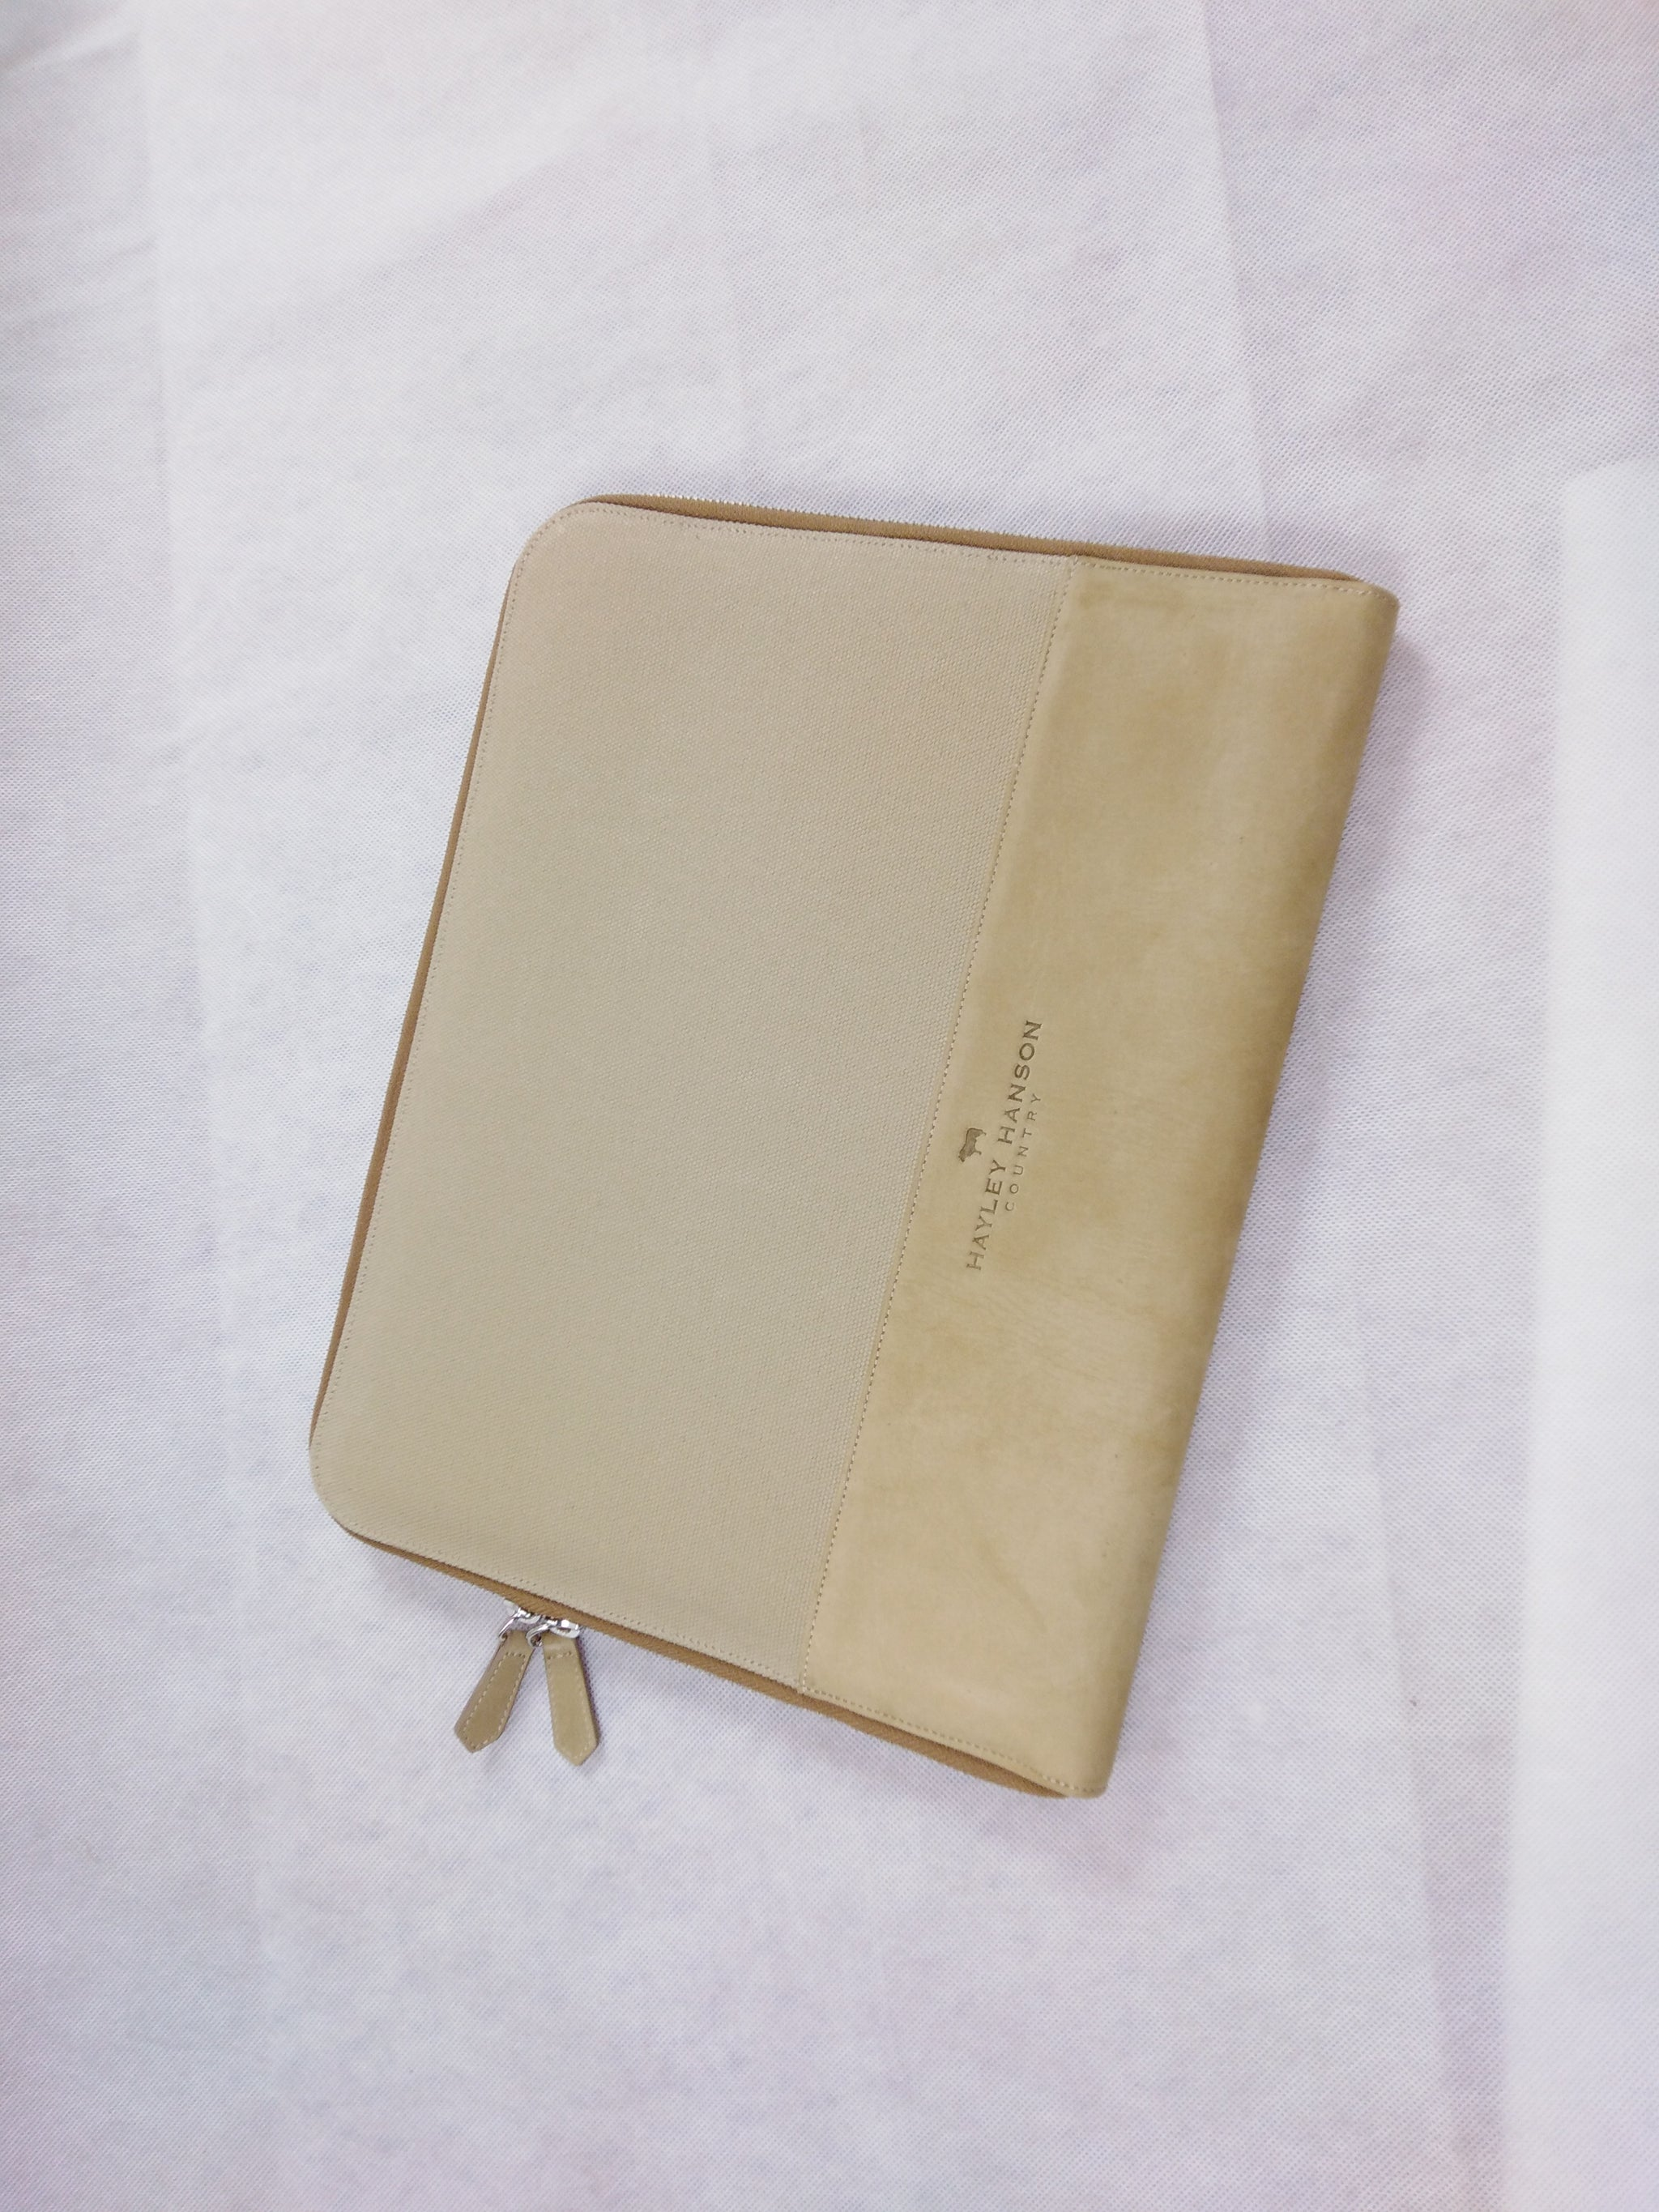 Tredurn leather trimmed zipped Folio